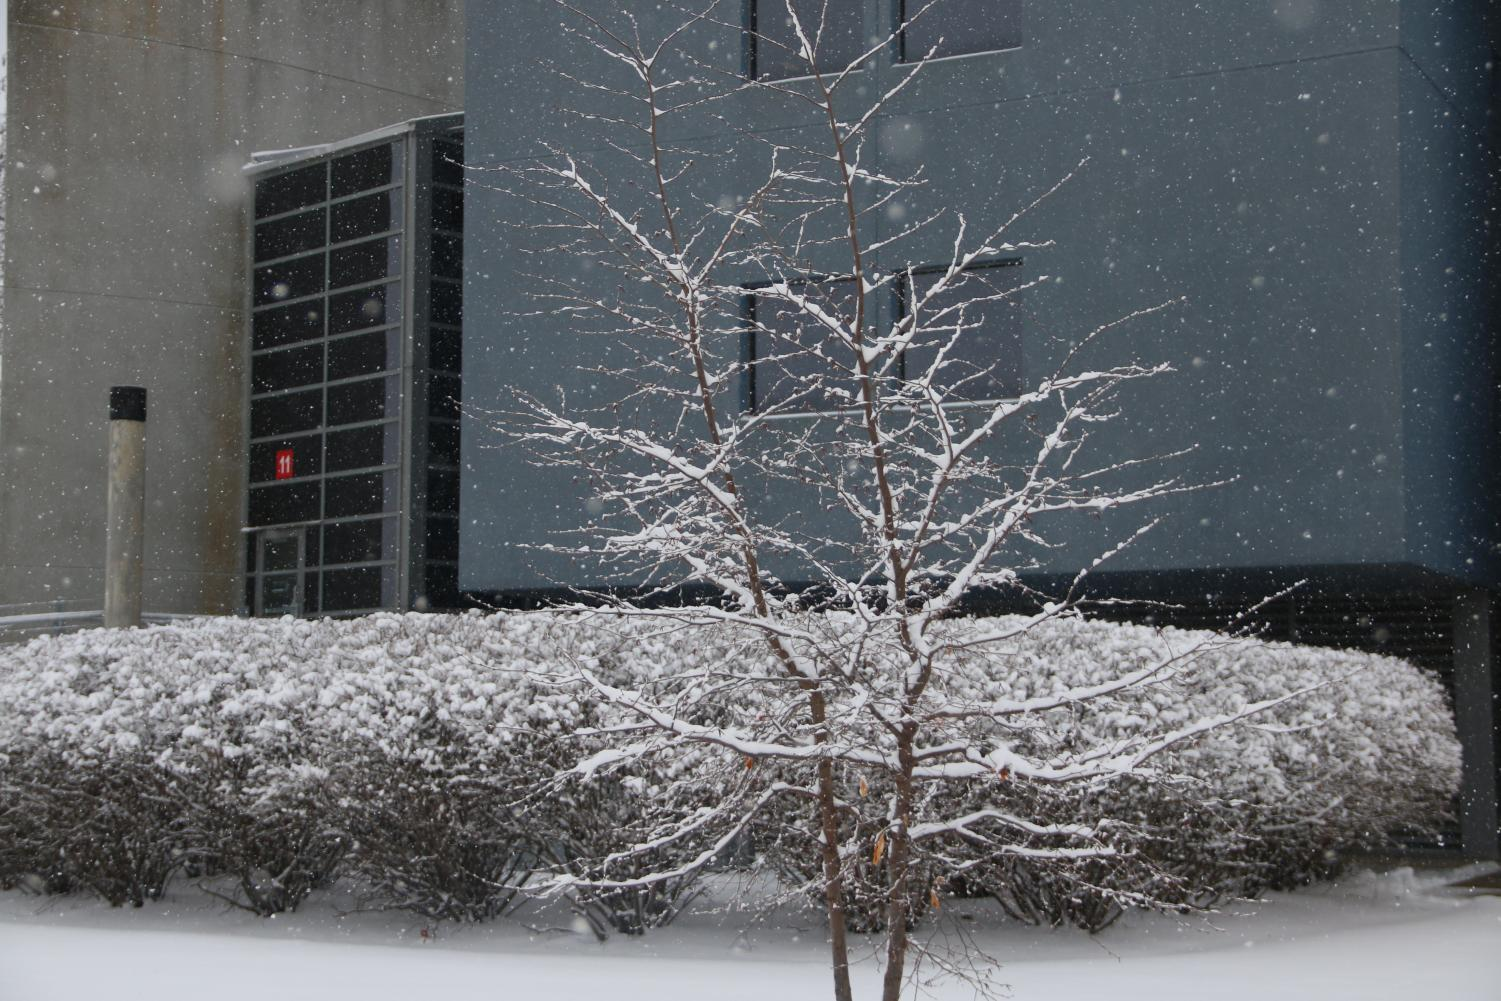 Tree+sprinkled+with+snow+near+the+science+wing.+